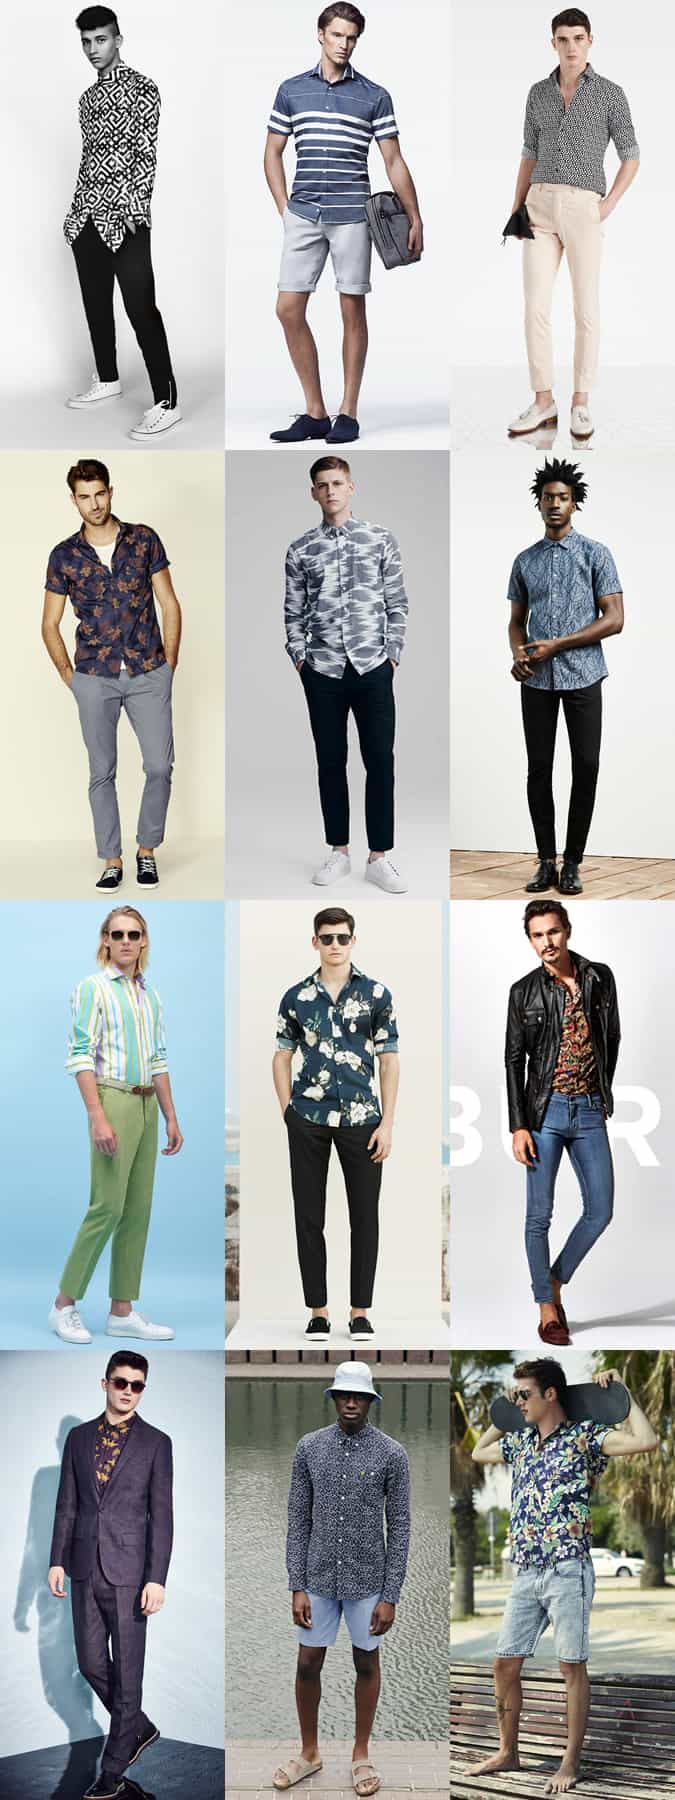 Men's Printed Shirts - Spring/Summer Outfit Inspiration Lookbook